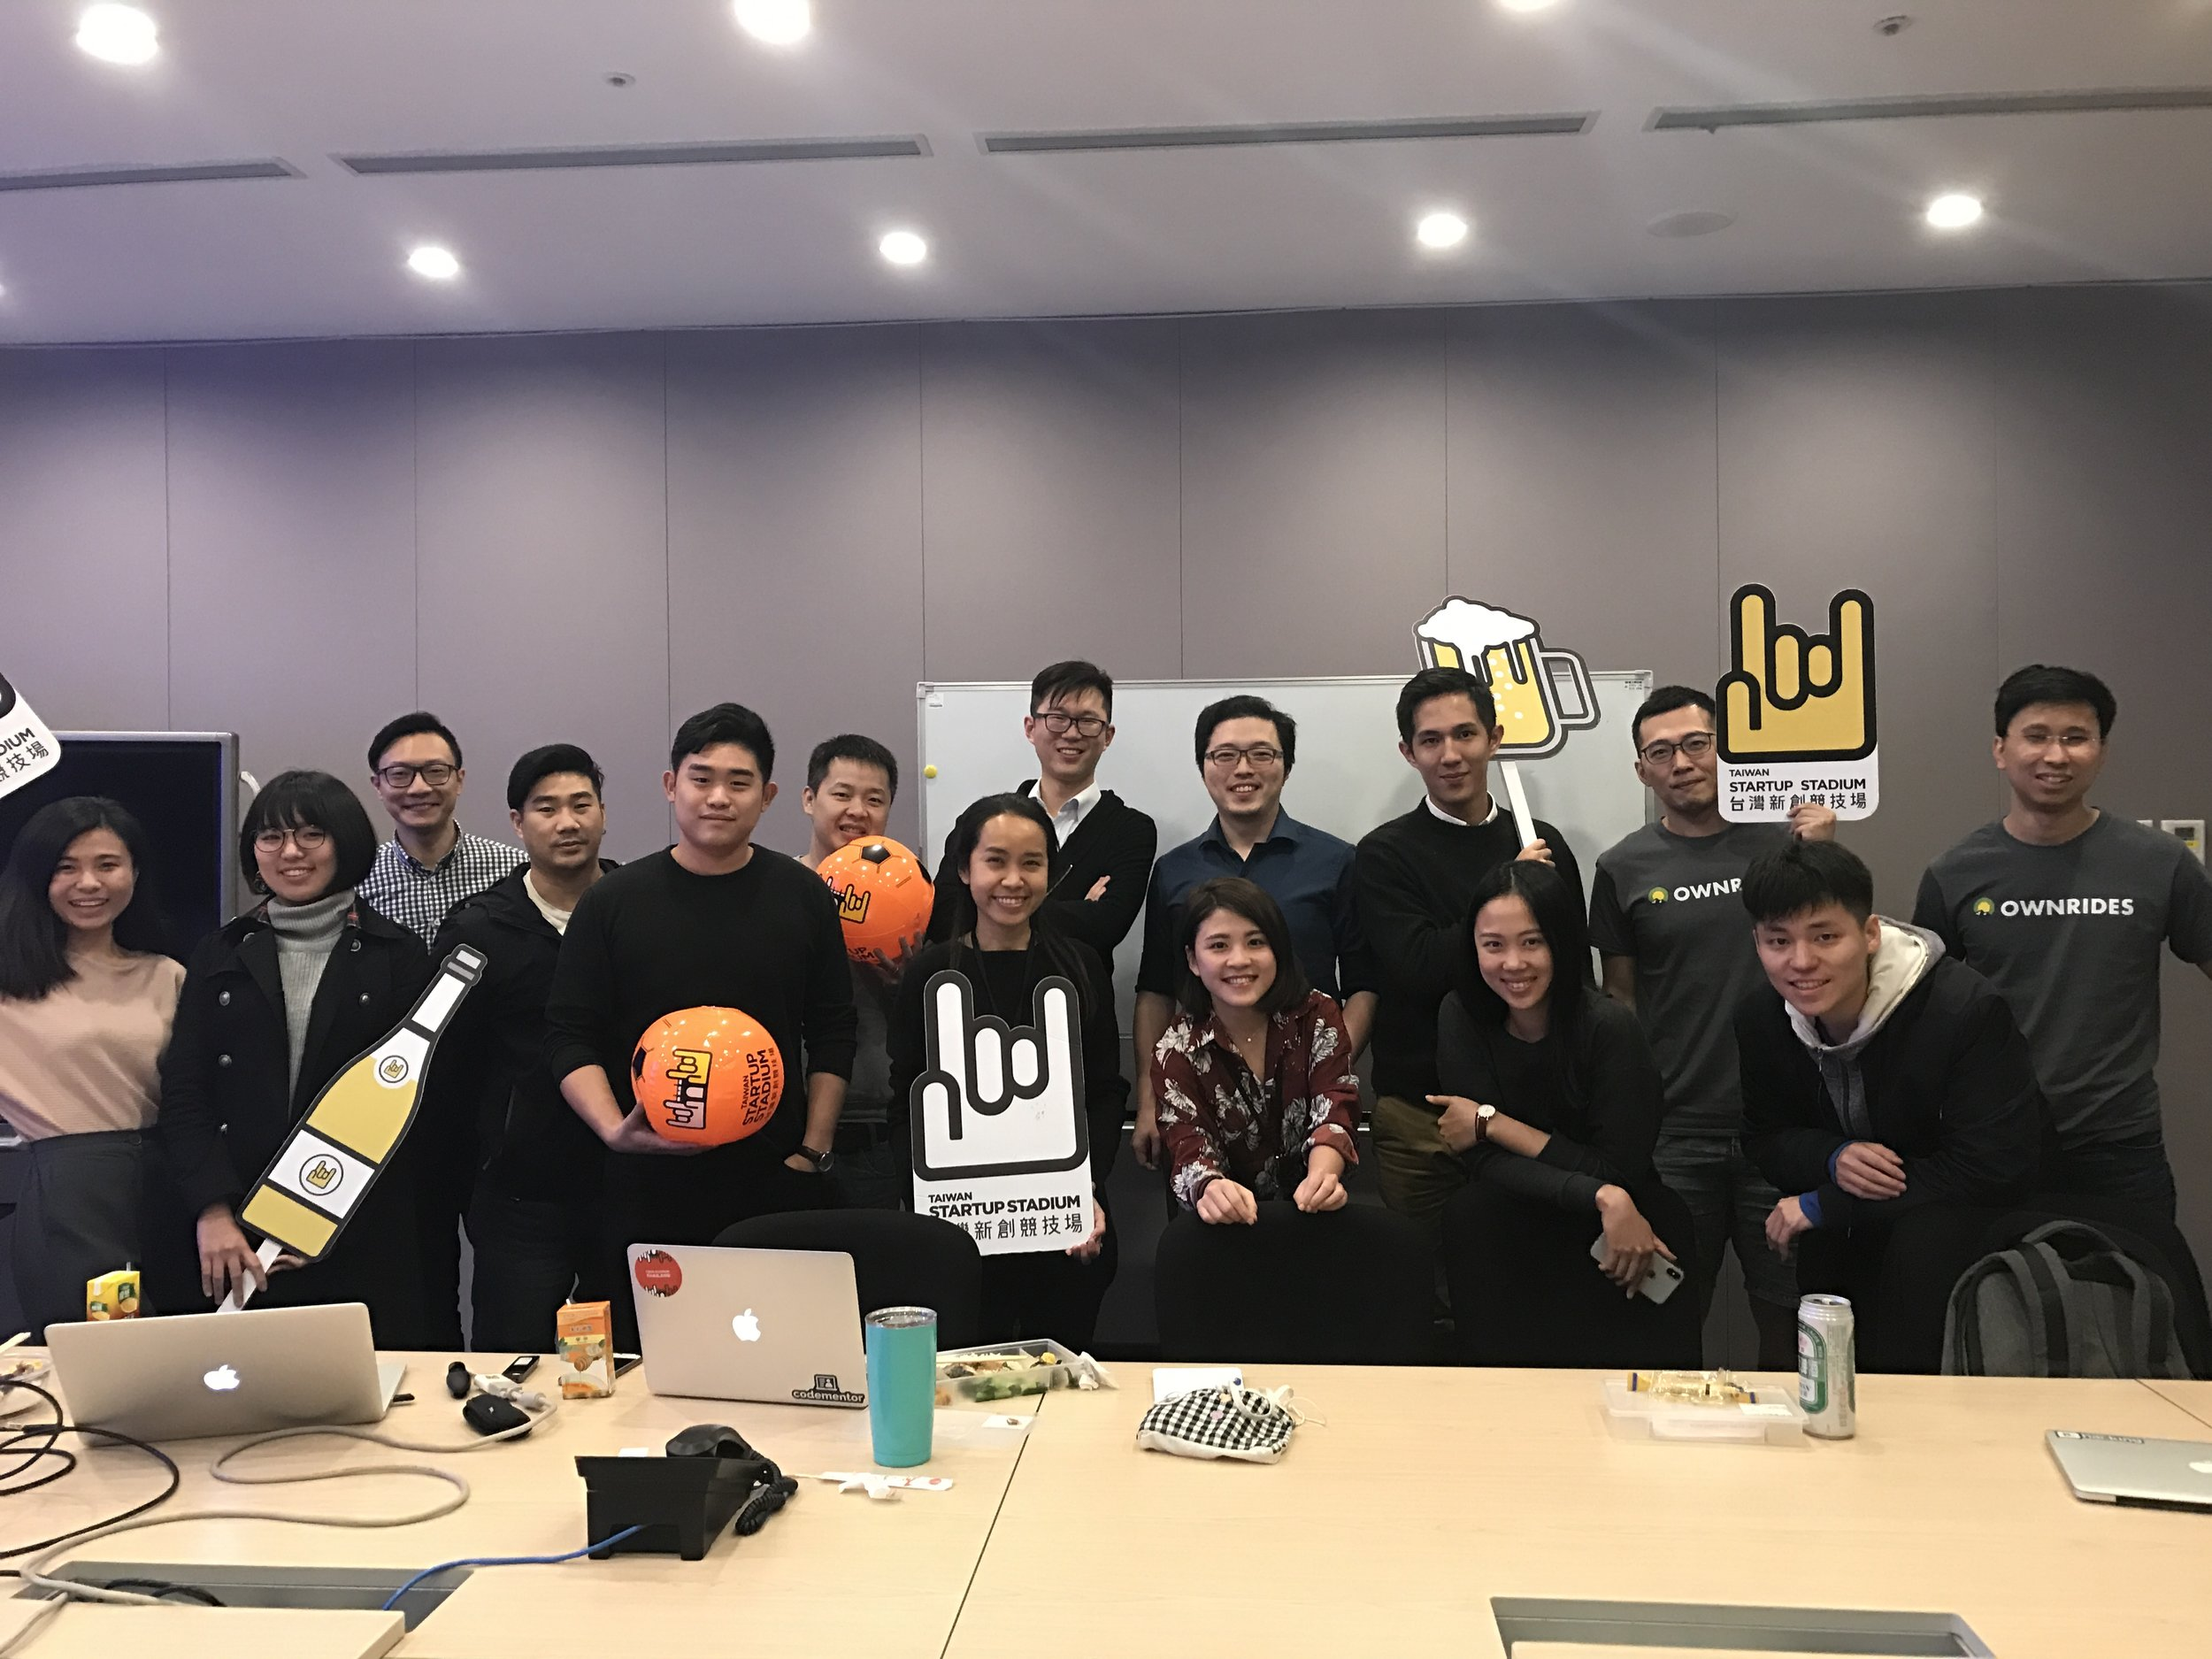 TSS's monthly event ceo day - a closed door sharing event for founders within starting lineup program. tss 會員計劃 Starting lineup 每月舉辦公司創辦人參加的閉門分享會 CEO DaY